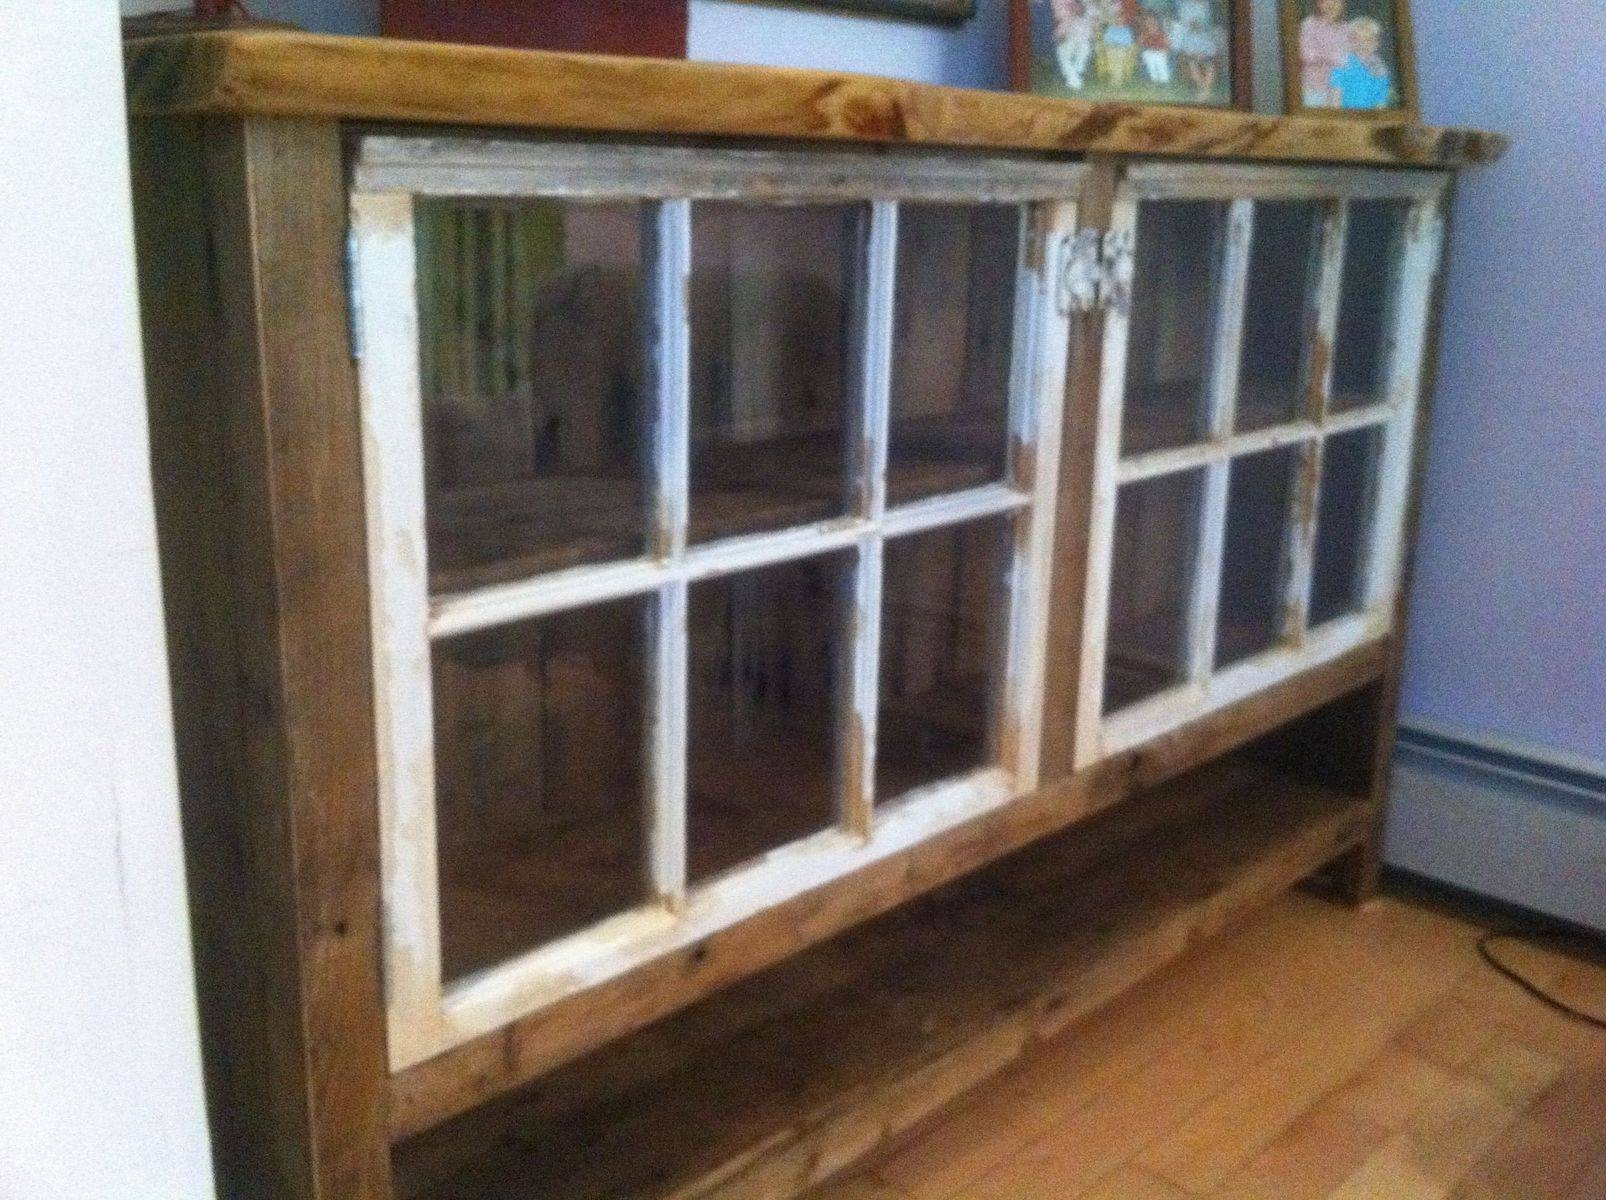 Handmade Reclaimed Wood Sideboard With Recycled Windowswooden pertaining to Reclaimed Wood Sideboards (Image 3 of 15)